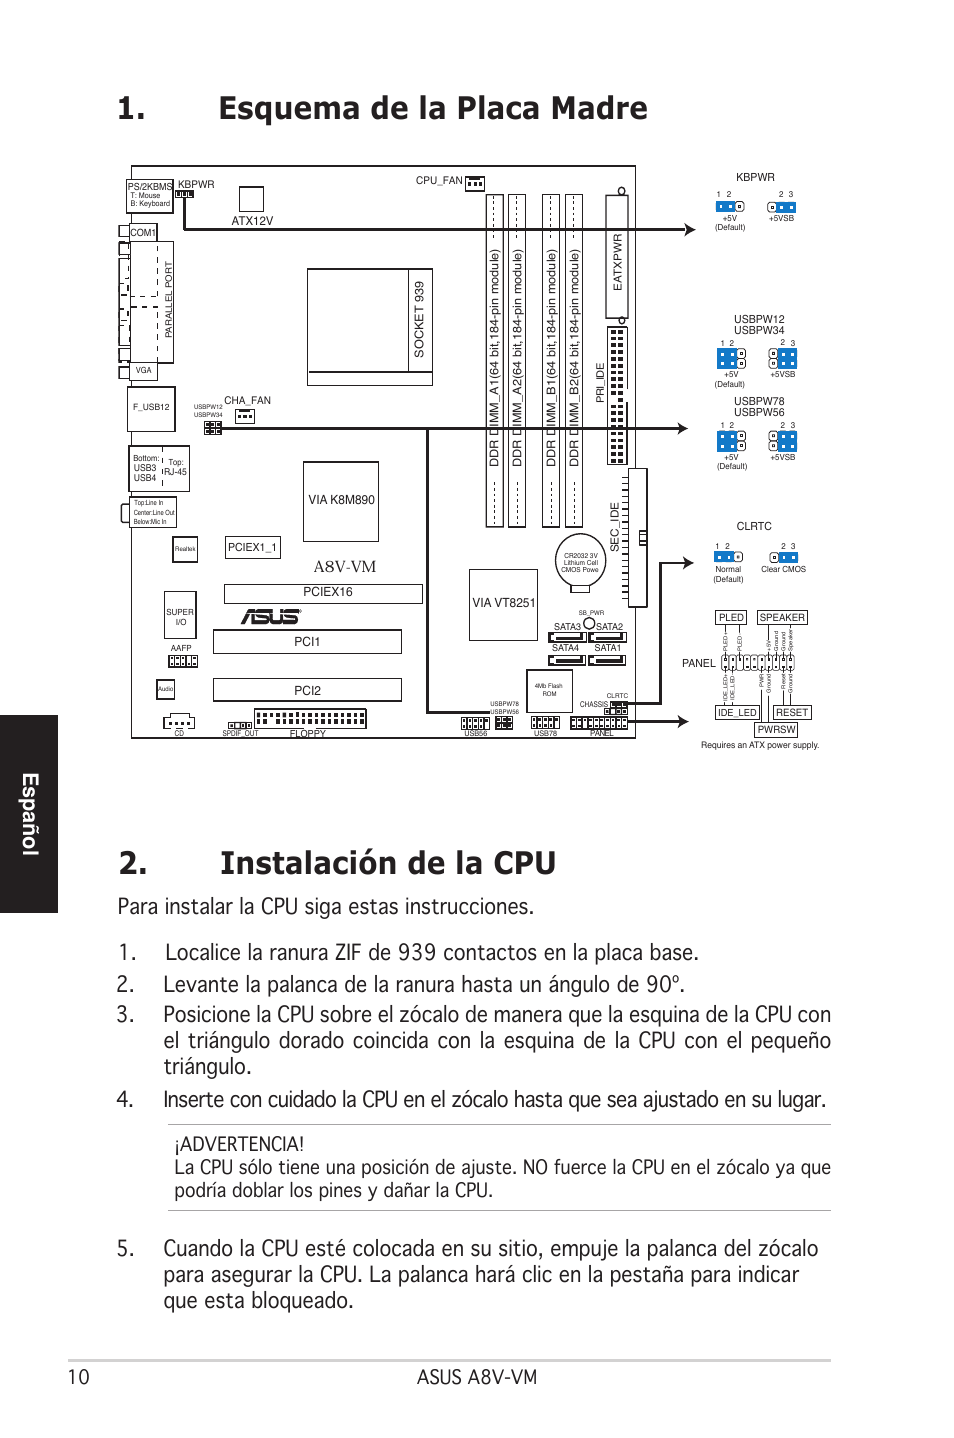 instalaci n de la cpu esquema de la placa madre espa ol asus a8v rh manualsdir com asus a8v-vm manual asus a8v-vm se drivers for windows 7